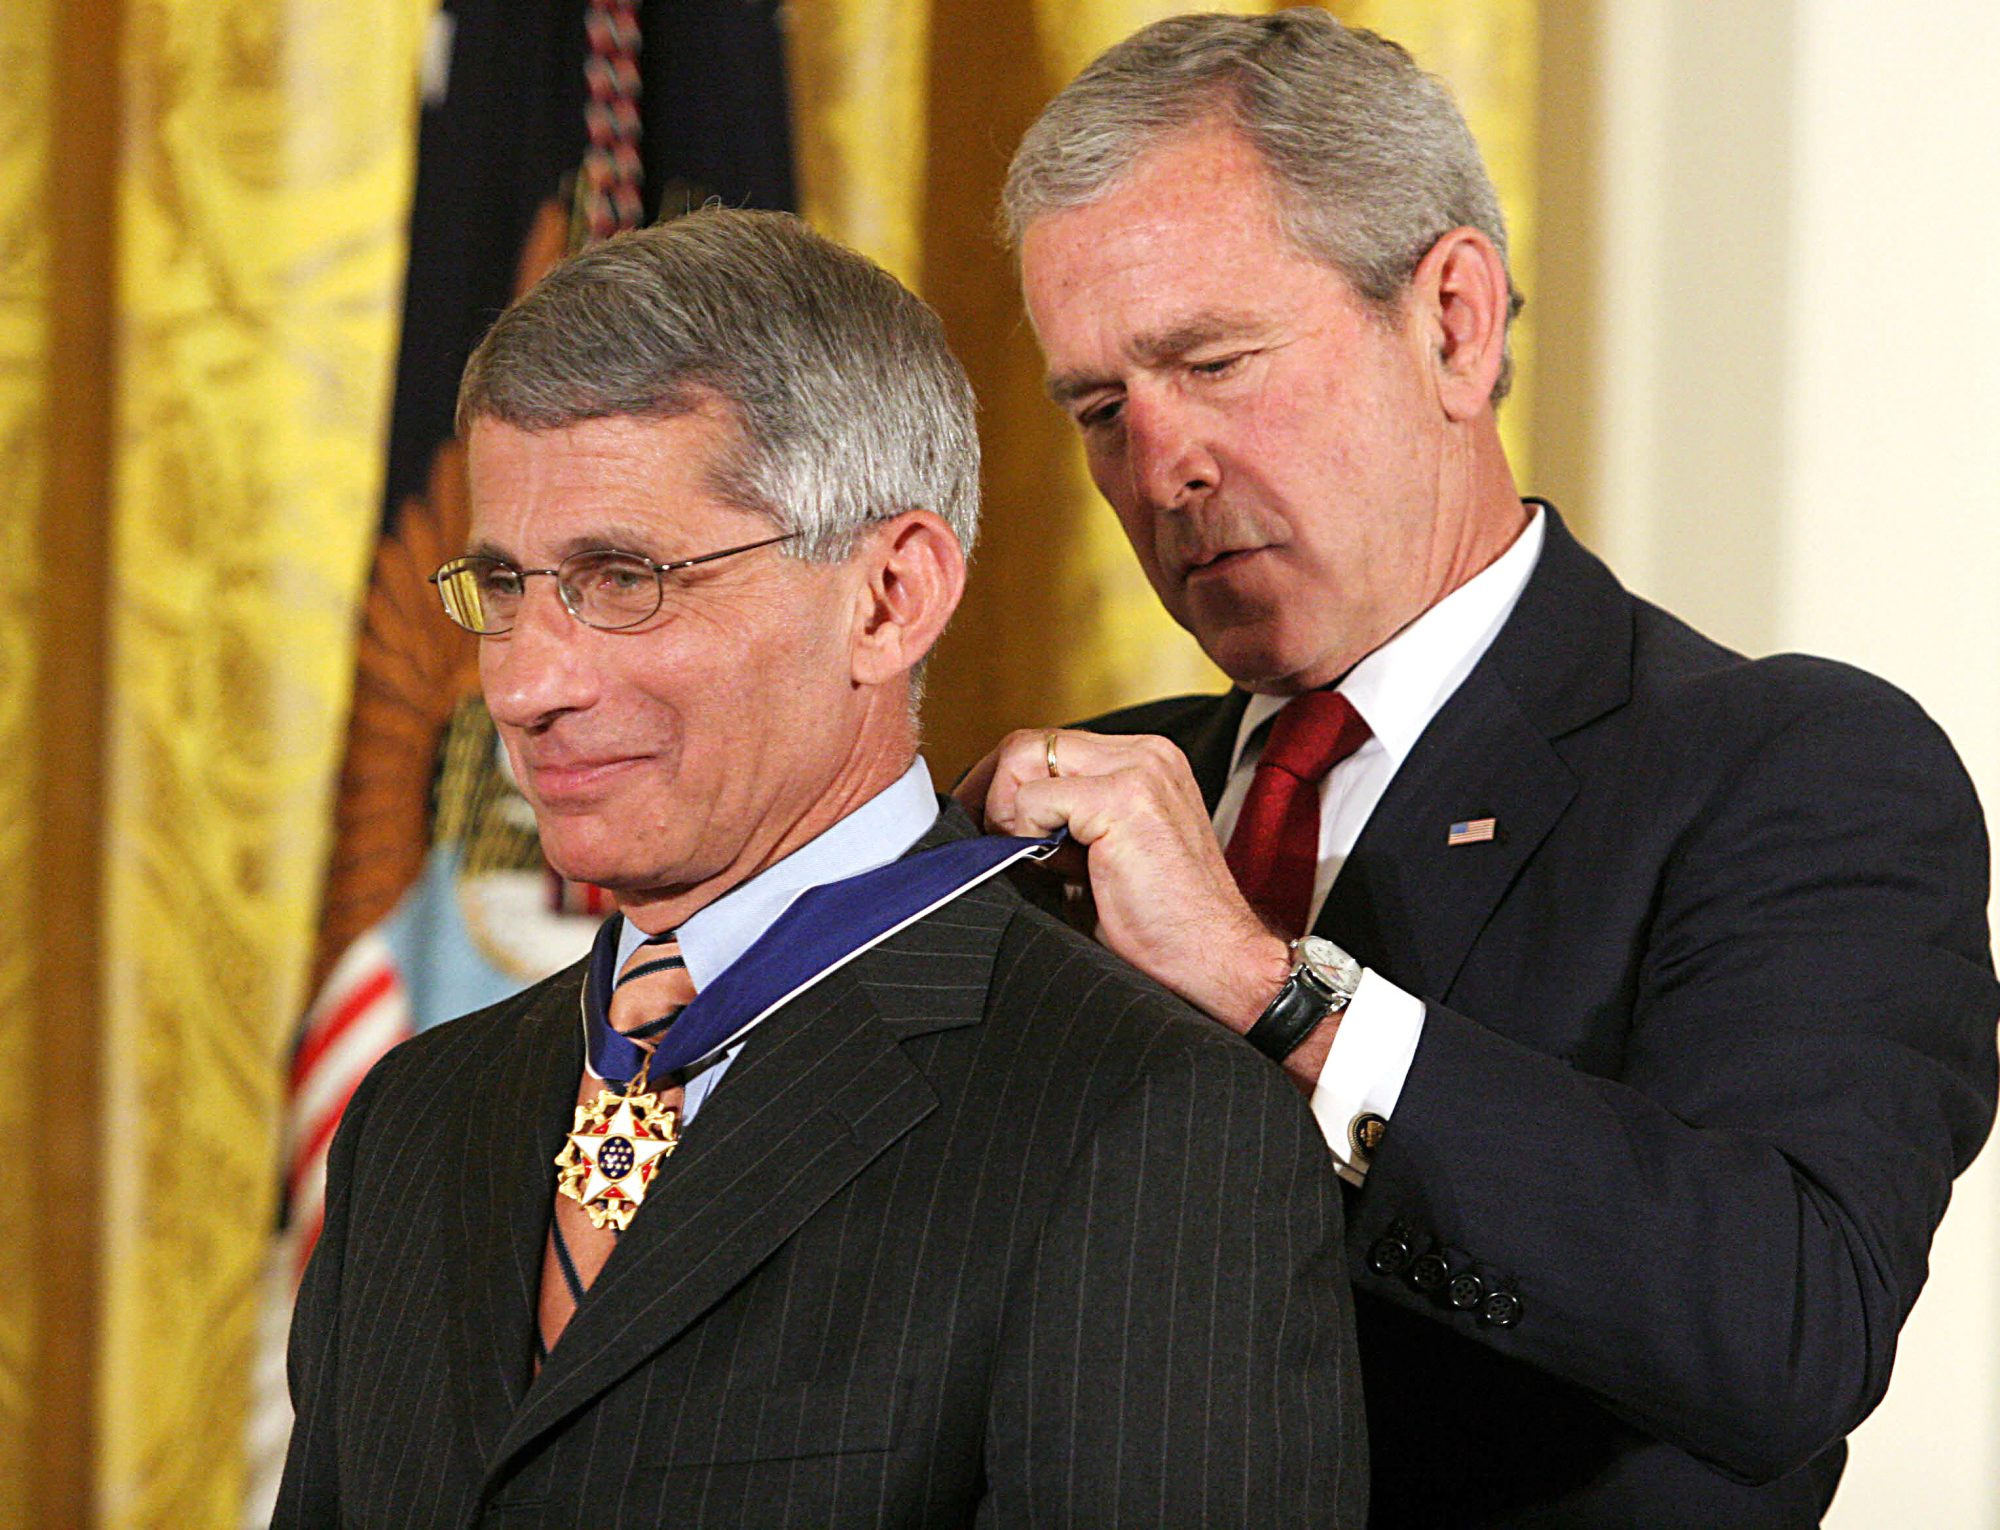 anthony fauci and george w. bush